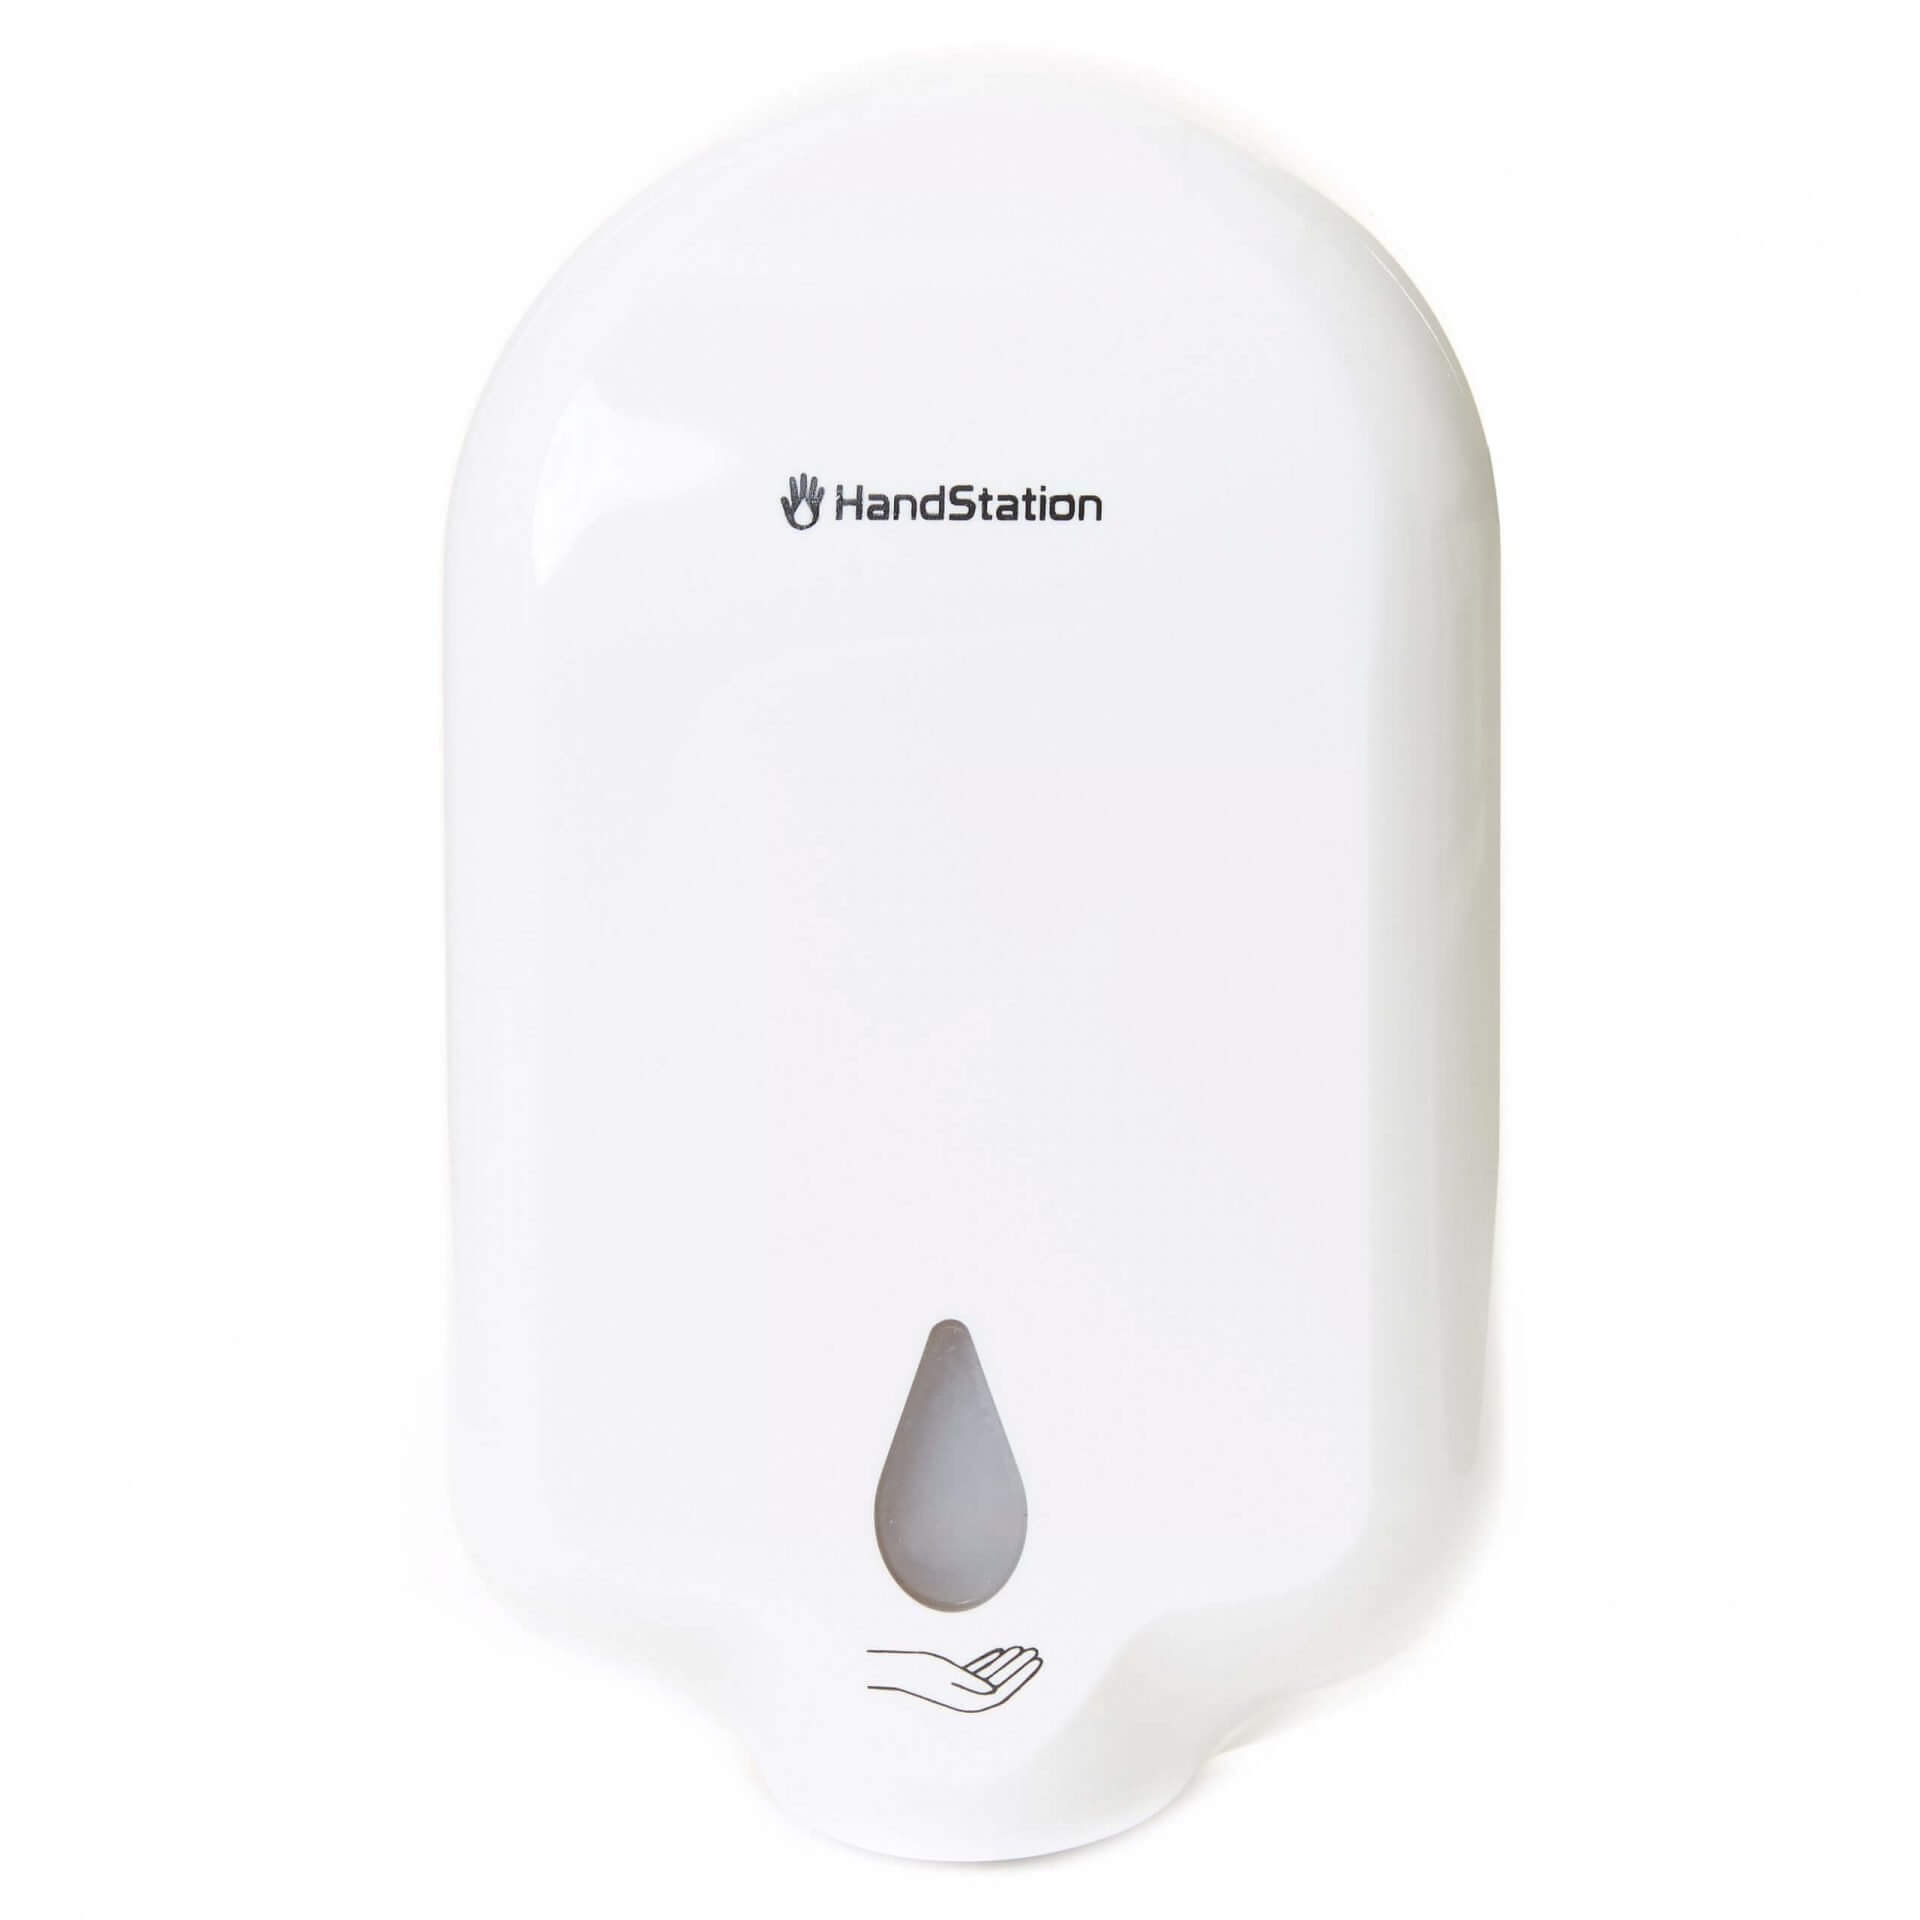 HandStation Eco Wall Mounted Automatic Touch Free Hand Sanitiser System – Gel Dispenser